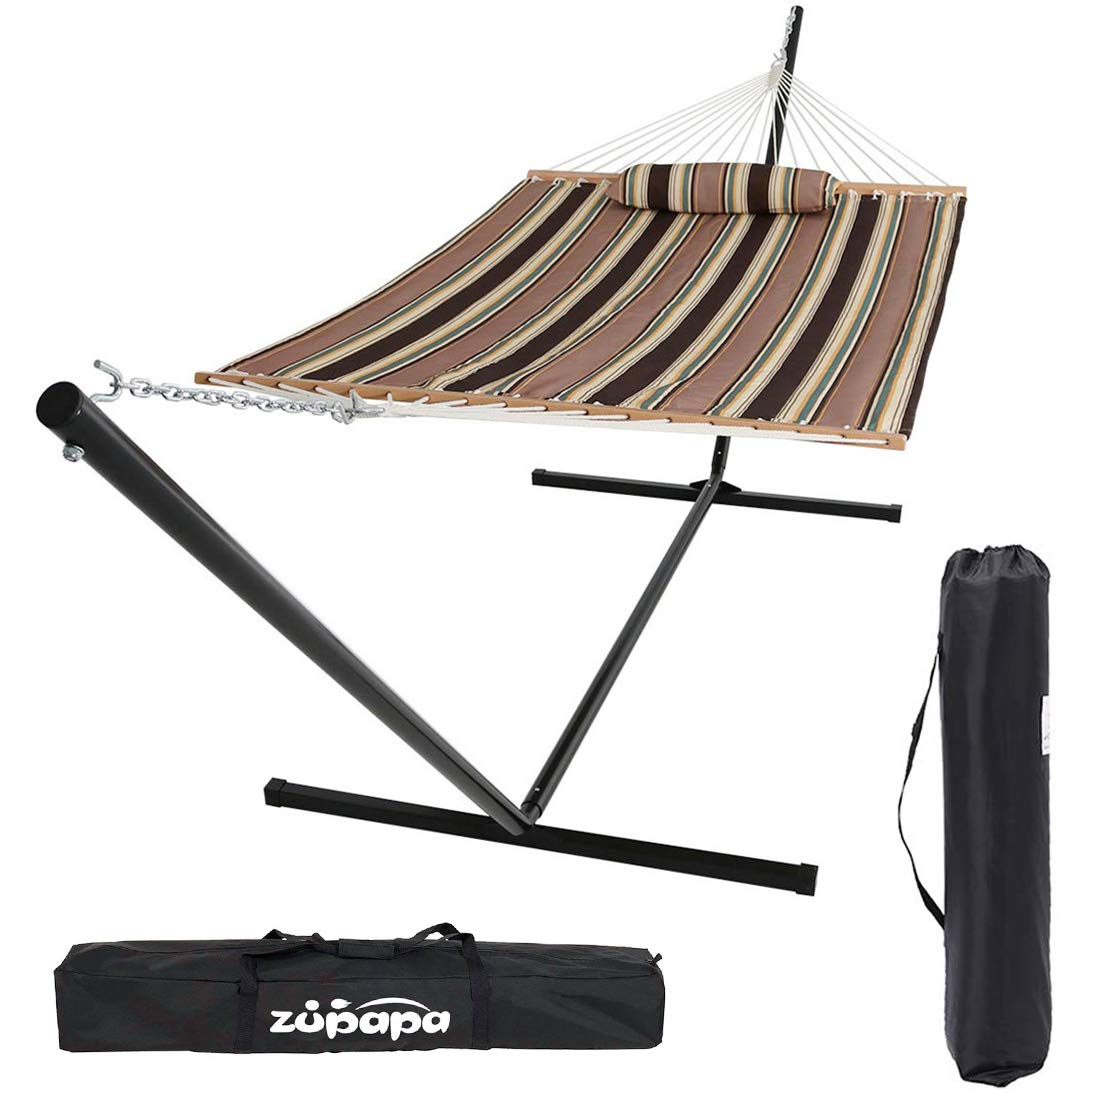 Zupapa 15 Feet Hammock with Stand Heavy Duty 550 Pounds Capacity with Spreader Bars and Pillow, 2 Person Double Hammock for Indoor Outdoor Use, 2 Storage Bags Included Coffee Stripe